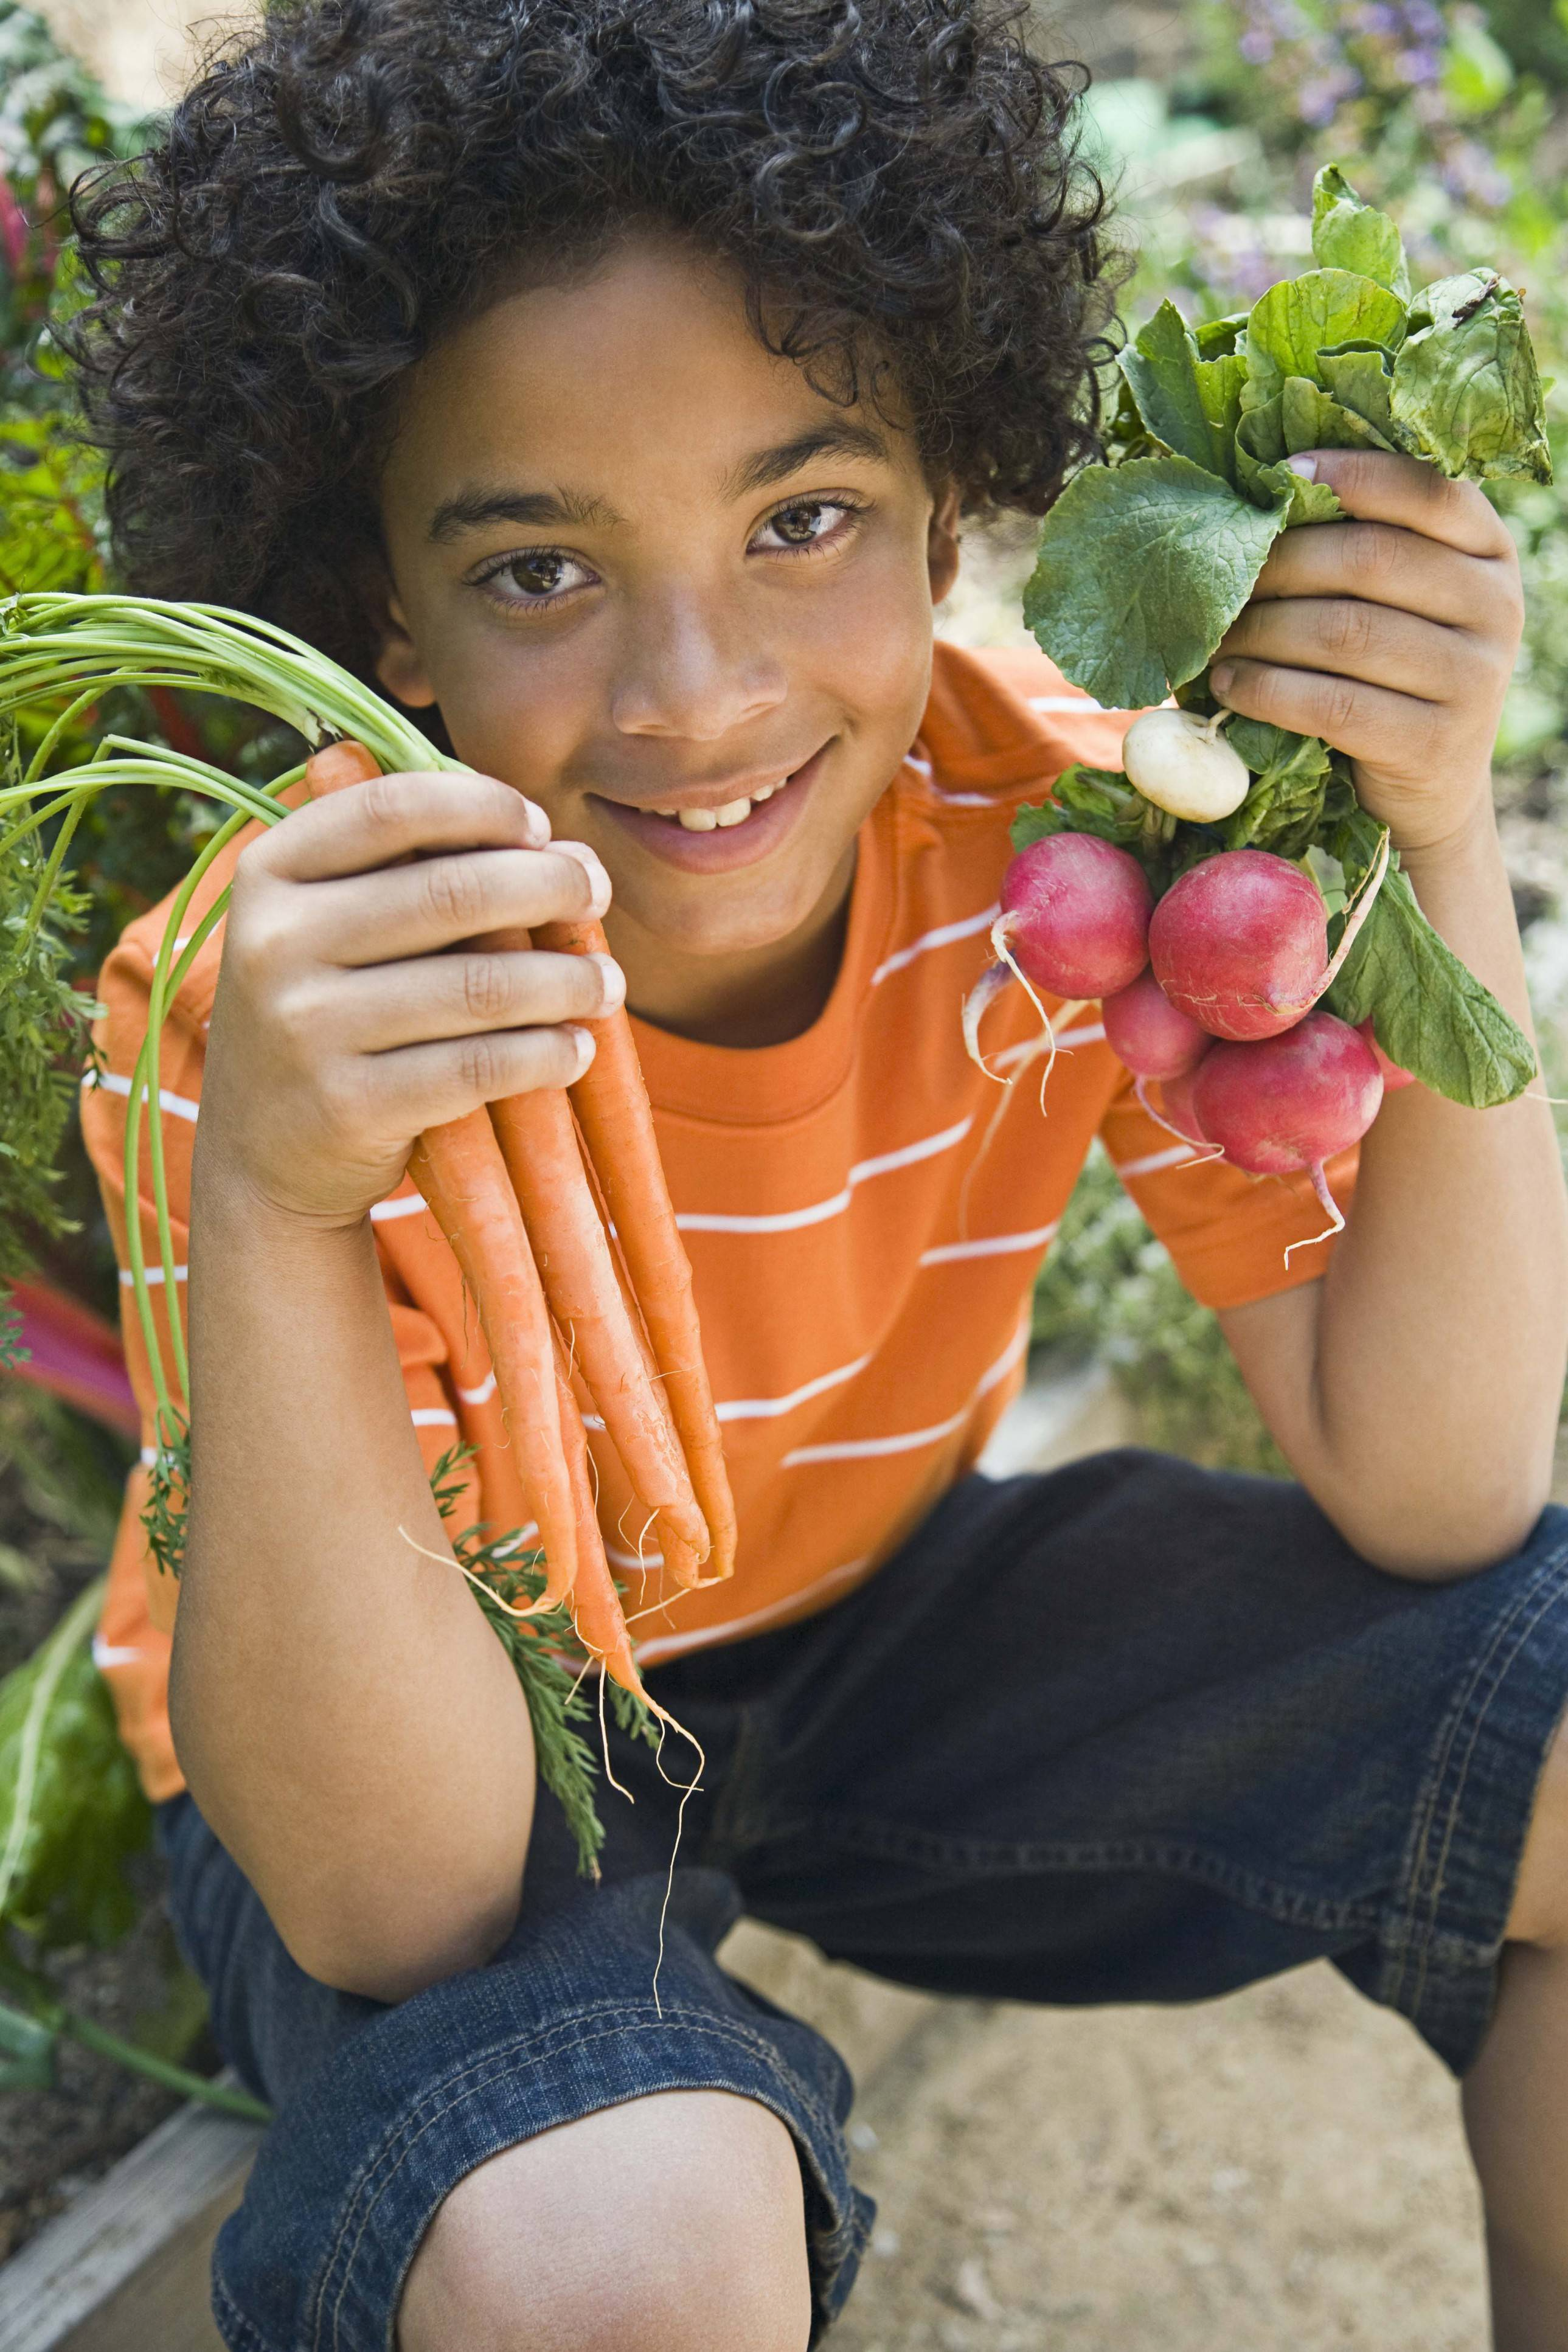 BEST BET: Root crops that allow children to dig for treasure at harvest time -- potatoes, carrots, beets and radishes.